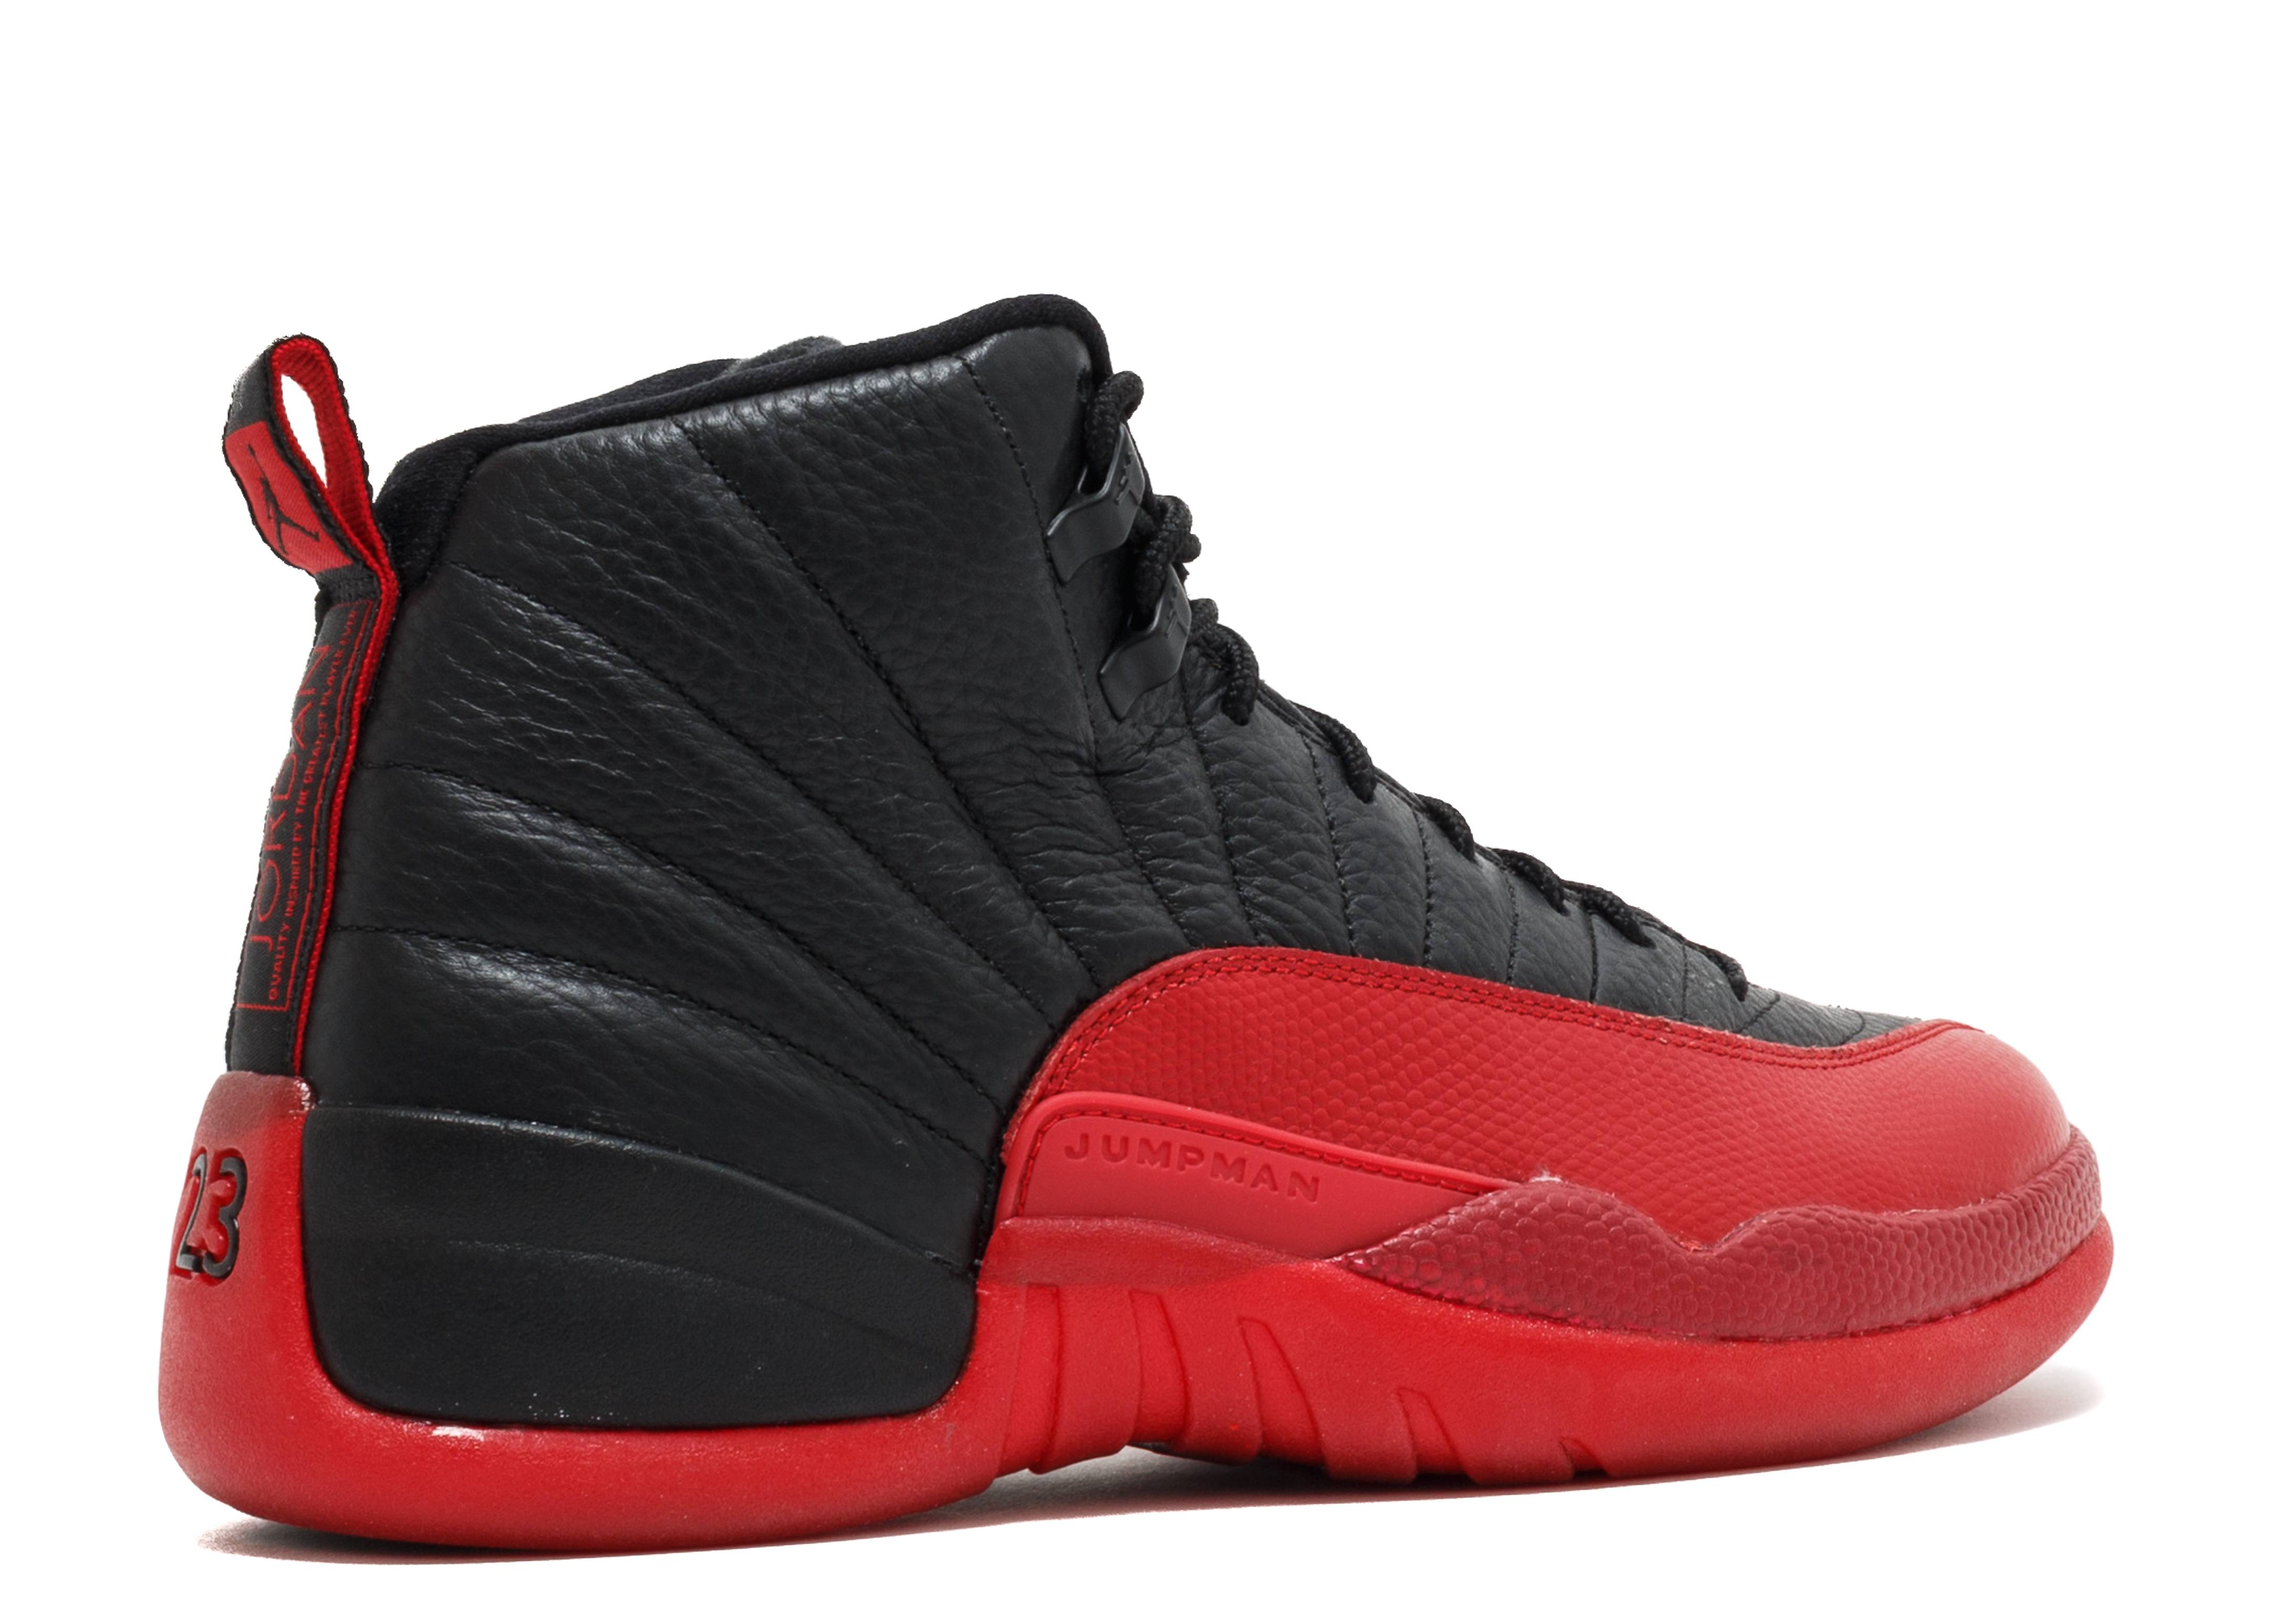 Flu Game Shoes Price